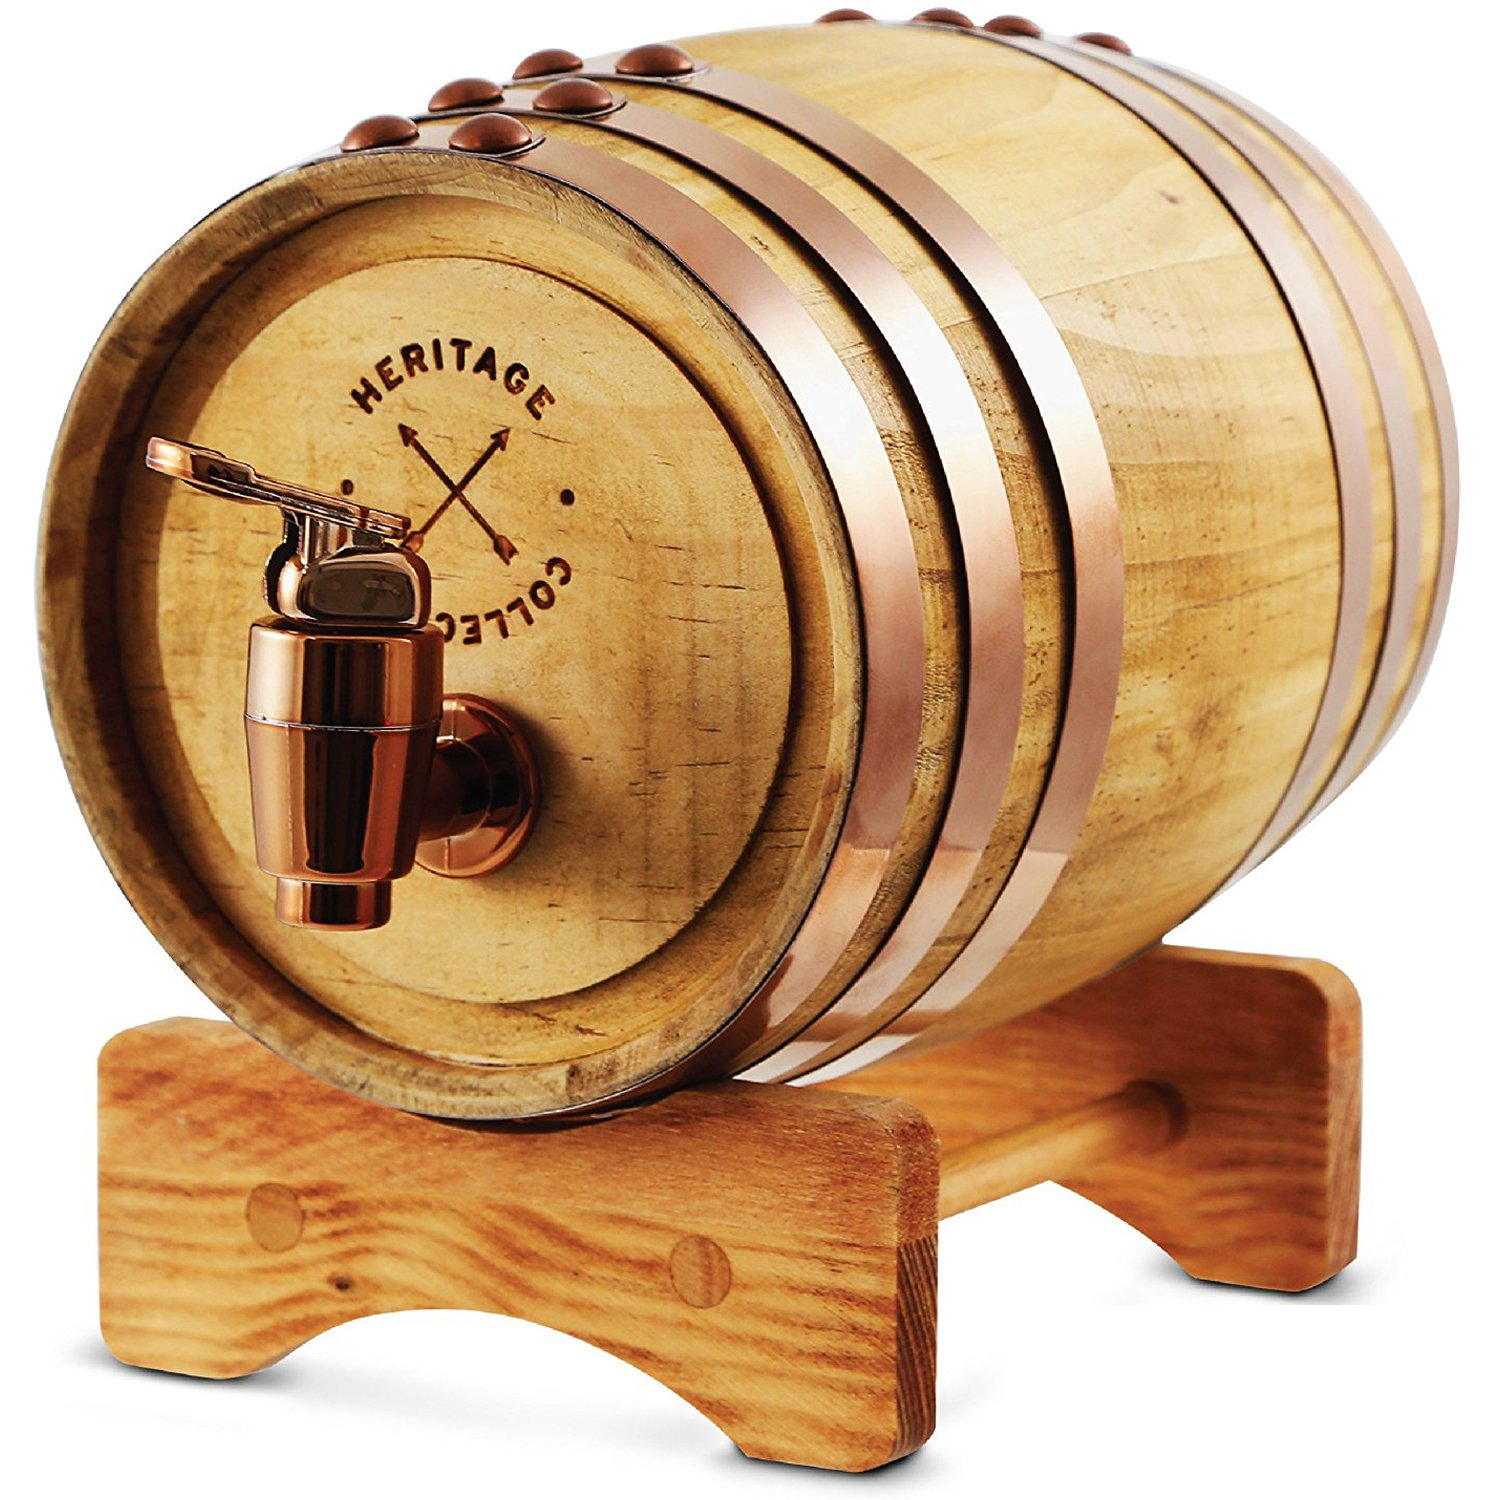 REFINERY AND CO Miniature Wood Whiskey Aging Barrel Dispenser & Mini Infuser 800 ml/27 fl oz Volume, for Serving, Table Home Accent Display, Storage of Spirits, Liquors; Great Gift for Men and Women